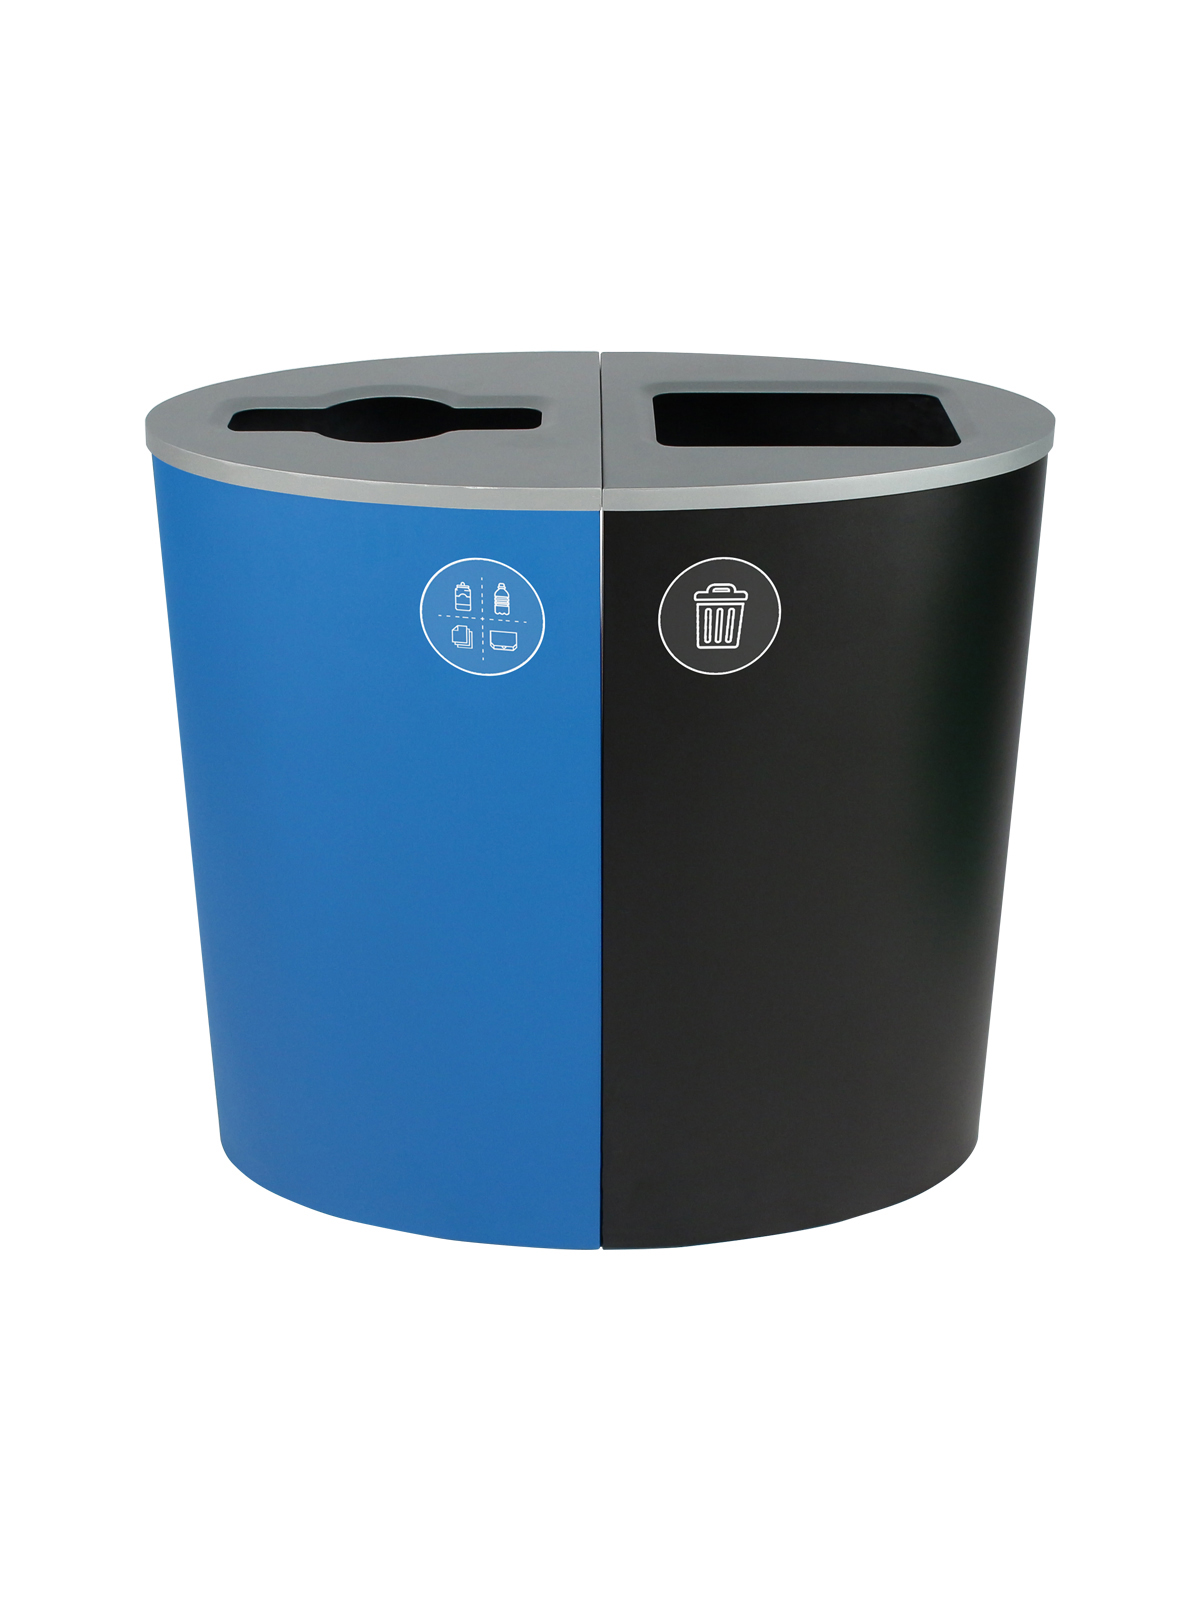 SPECTRUM - Double - Connecticut Compliant - Mixed Recyclables-Waste - Mixed-Full - Blue-Black